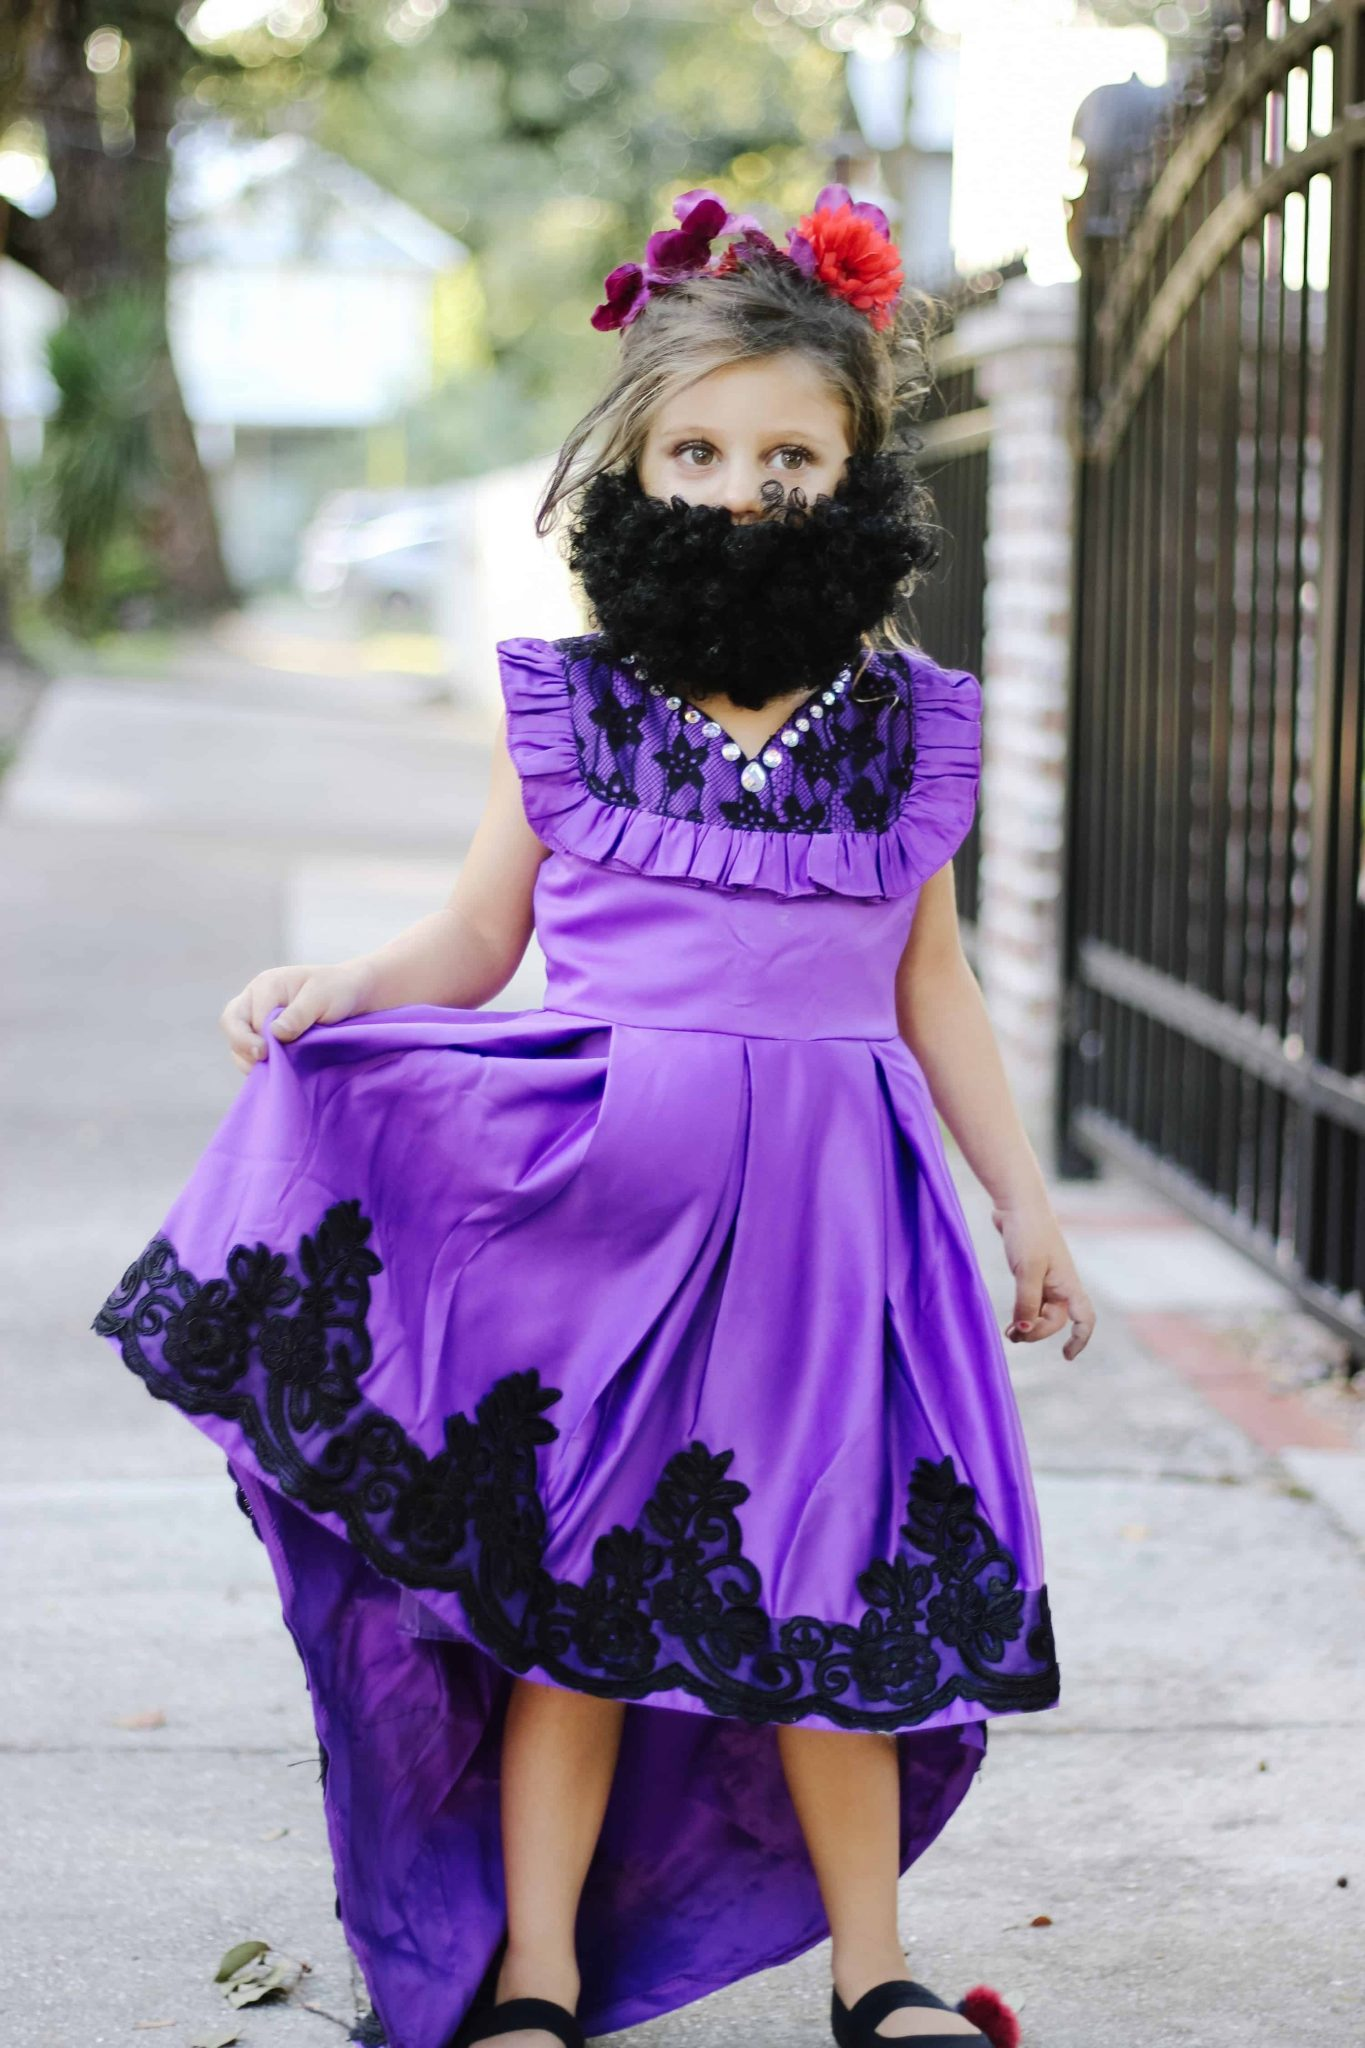 Greatest Showman Halloween Costumes - bearded lady